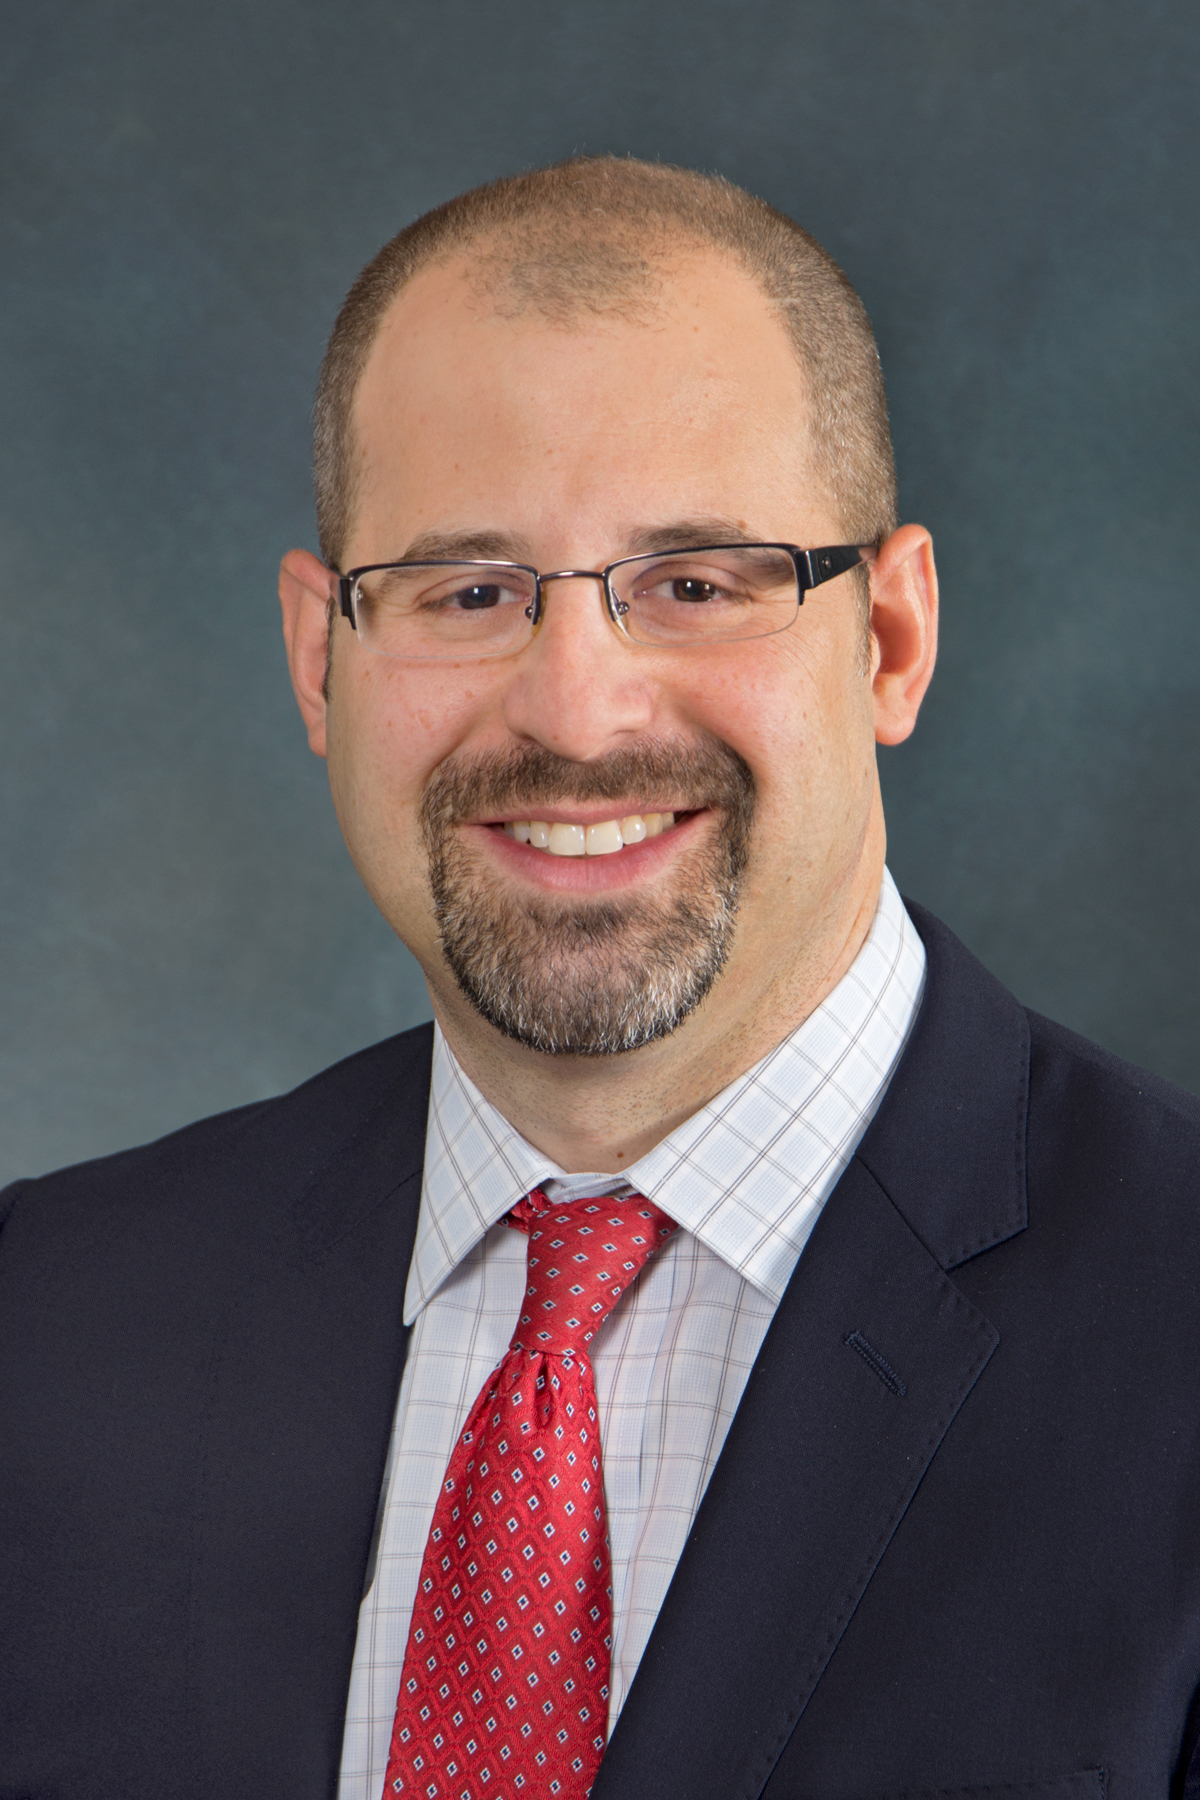 Adam J Carinci MD, MBA. (University of Rochester School of Medicine and Dentistry)